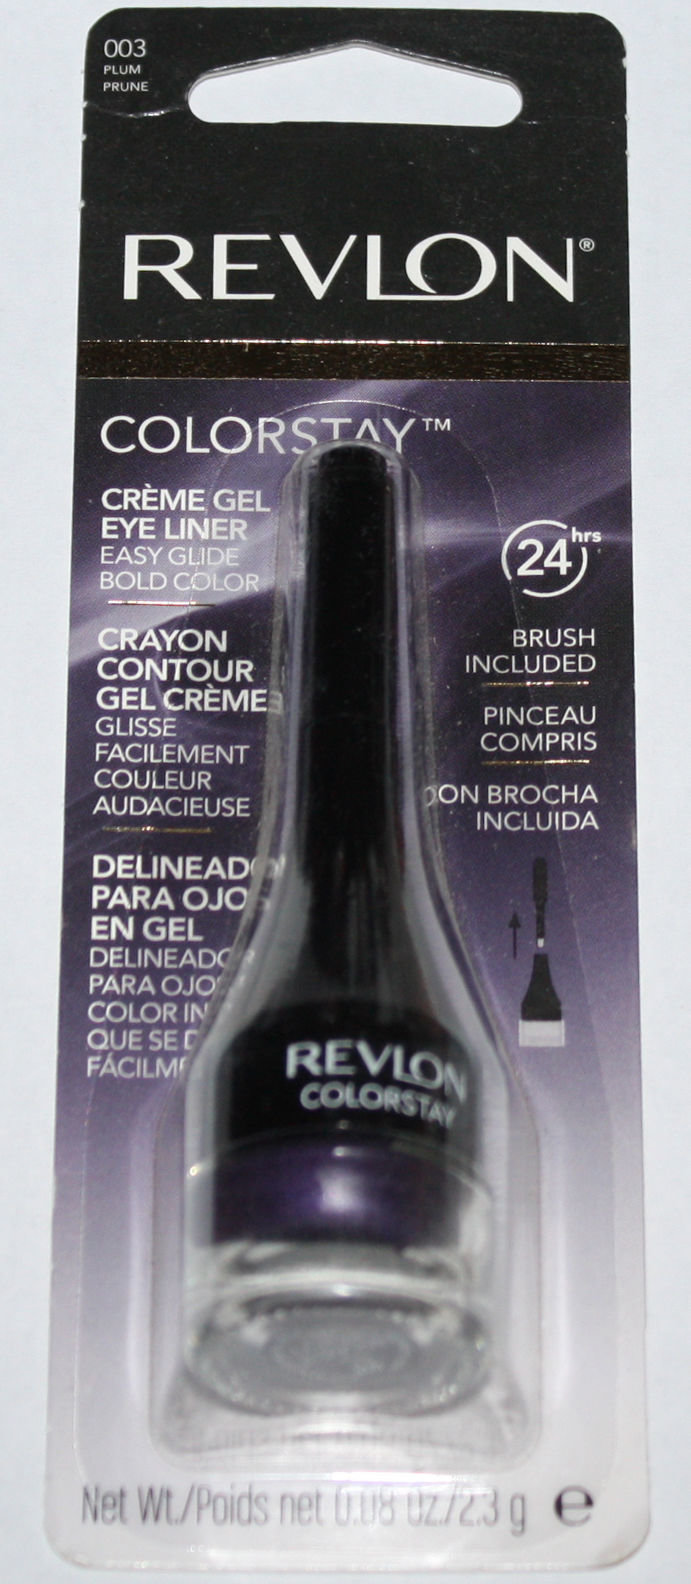 Revlon COLORSTAY Creme Gel Eye Liner #003 PLUM .08 oz 14800